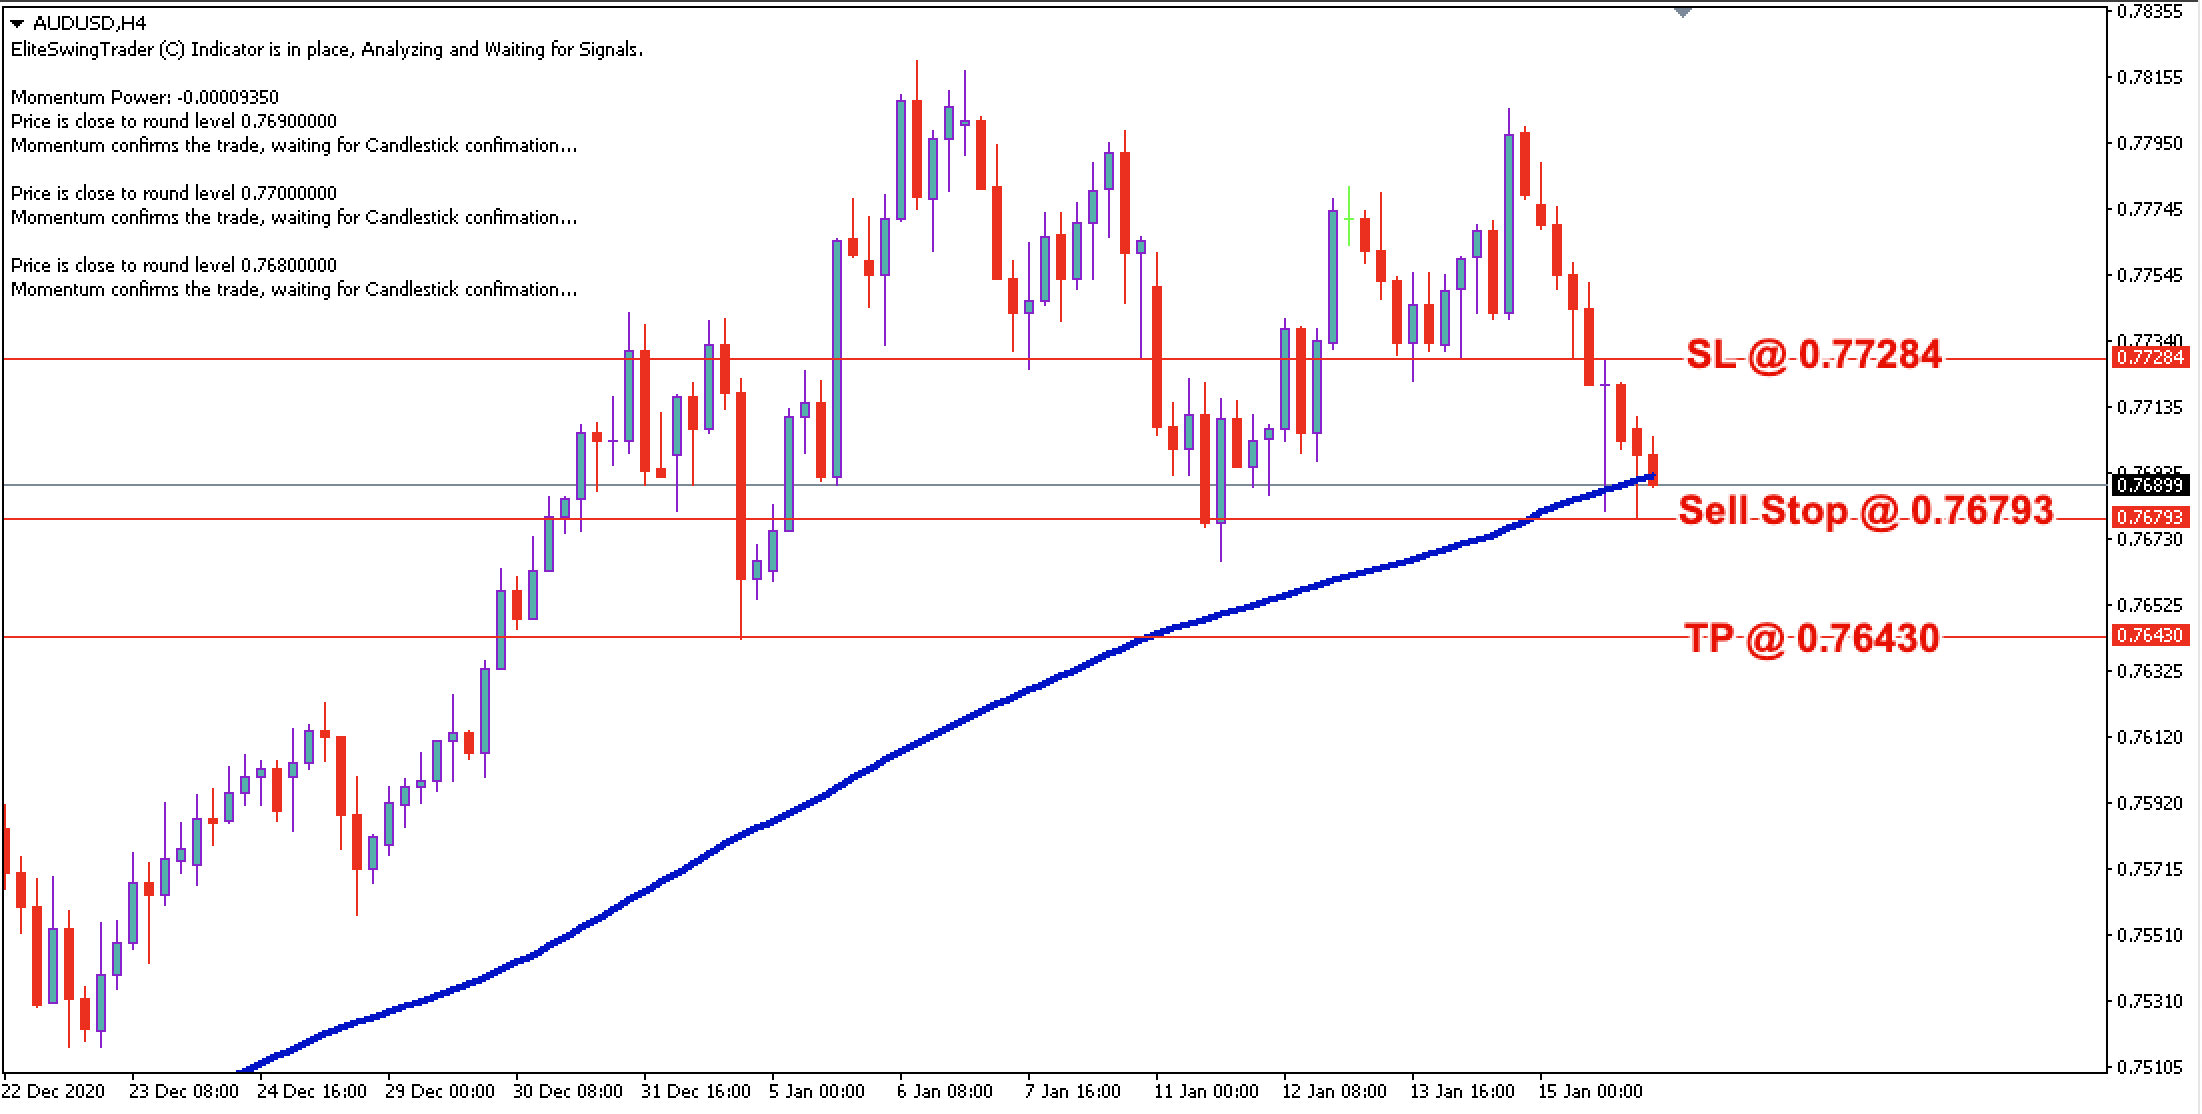 AUD/USD Daily Price Forecast - 18th Jan 2021